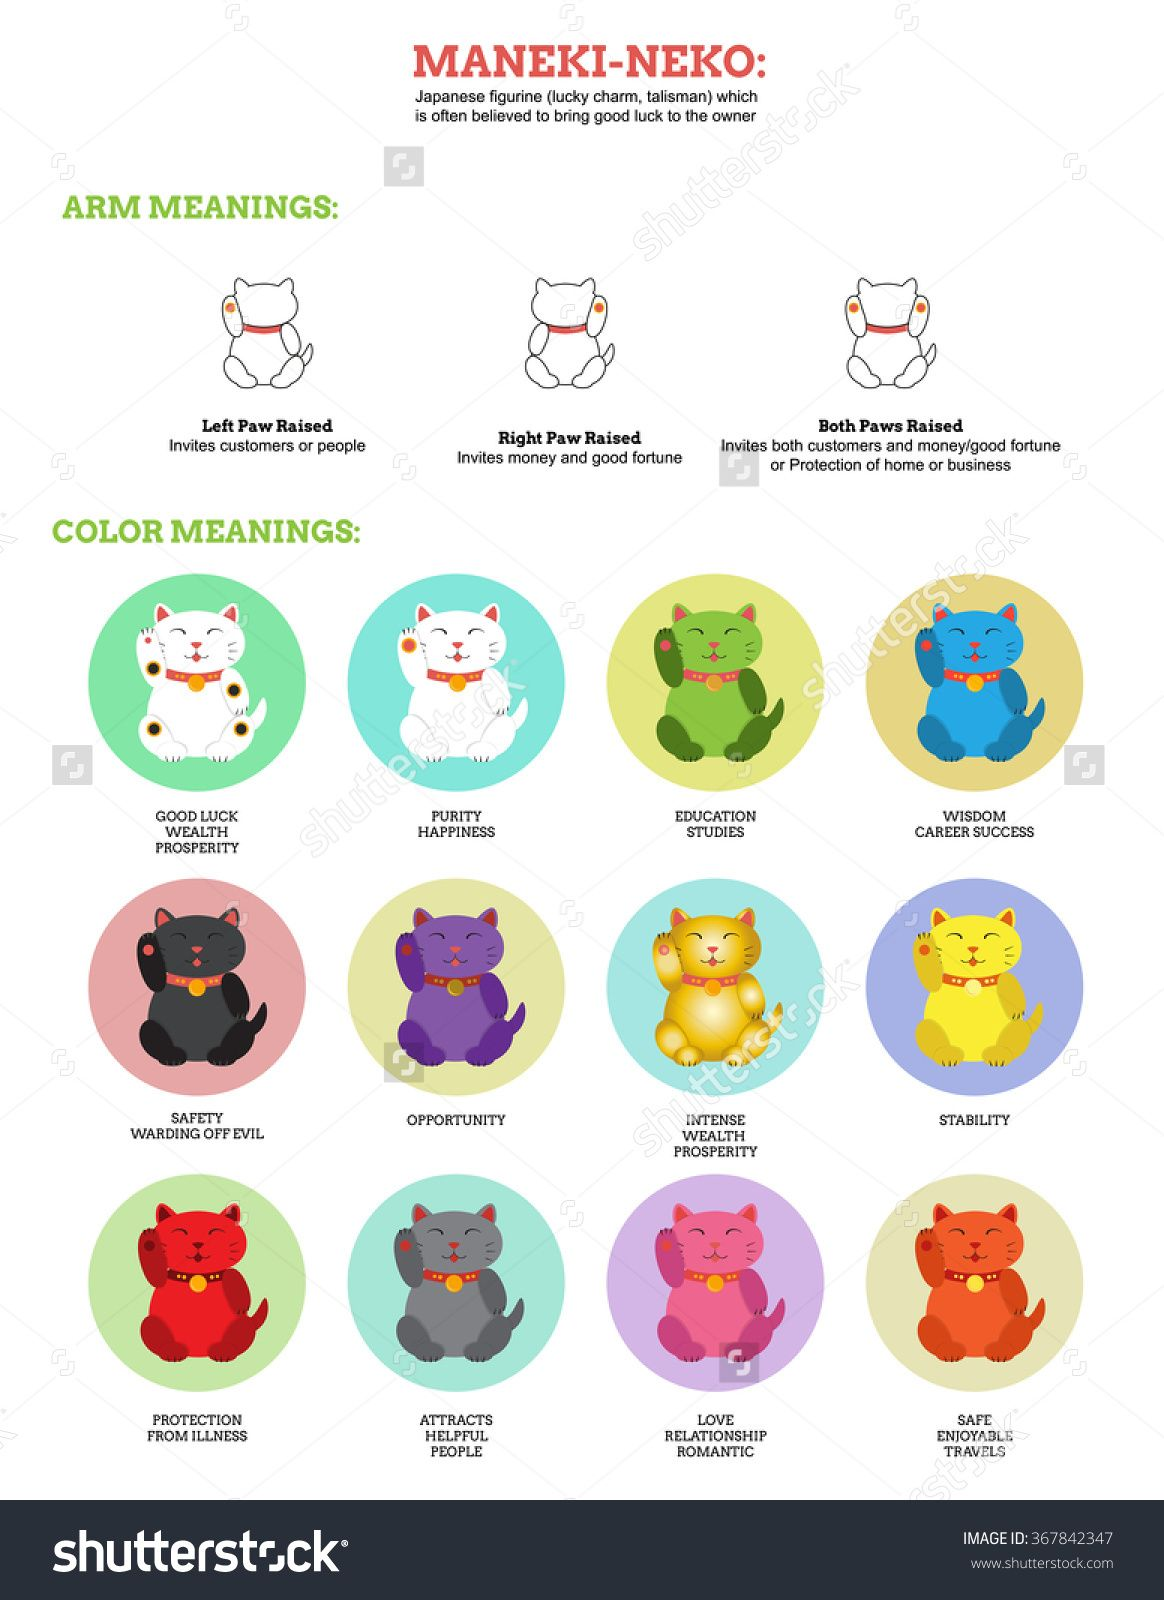 maneki neko meanings - Google Search